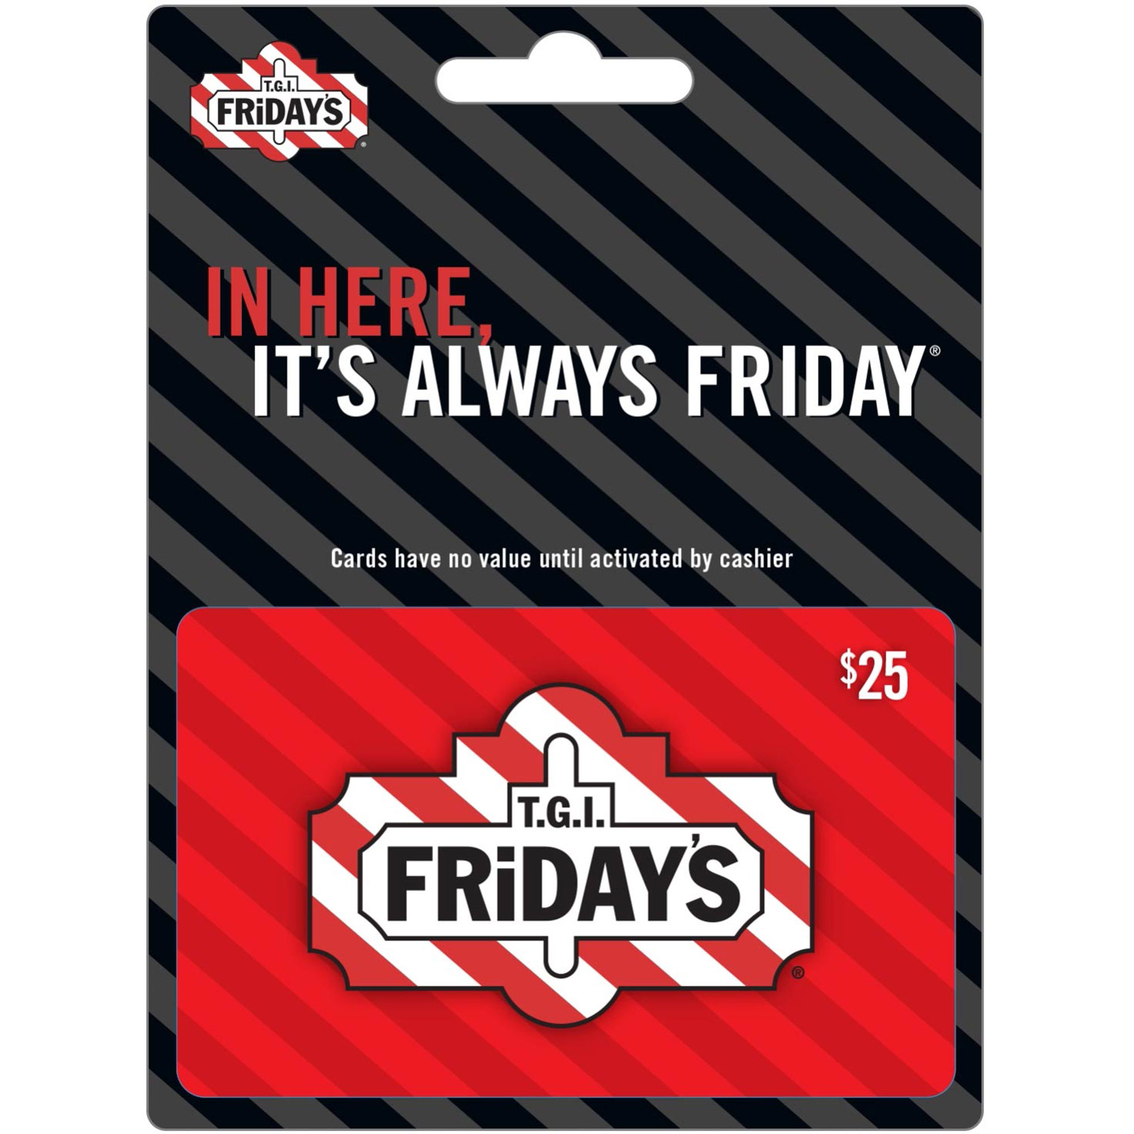 1. You need to go to the tgi fridays gift card distributors website 2. On the website of the seller in a particular form, you must enter the details of the gift card this is the range of the gift card and add the PIN code of the card. These data are on the back of the tgi fridays gift card.